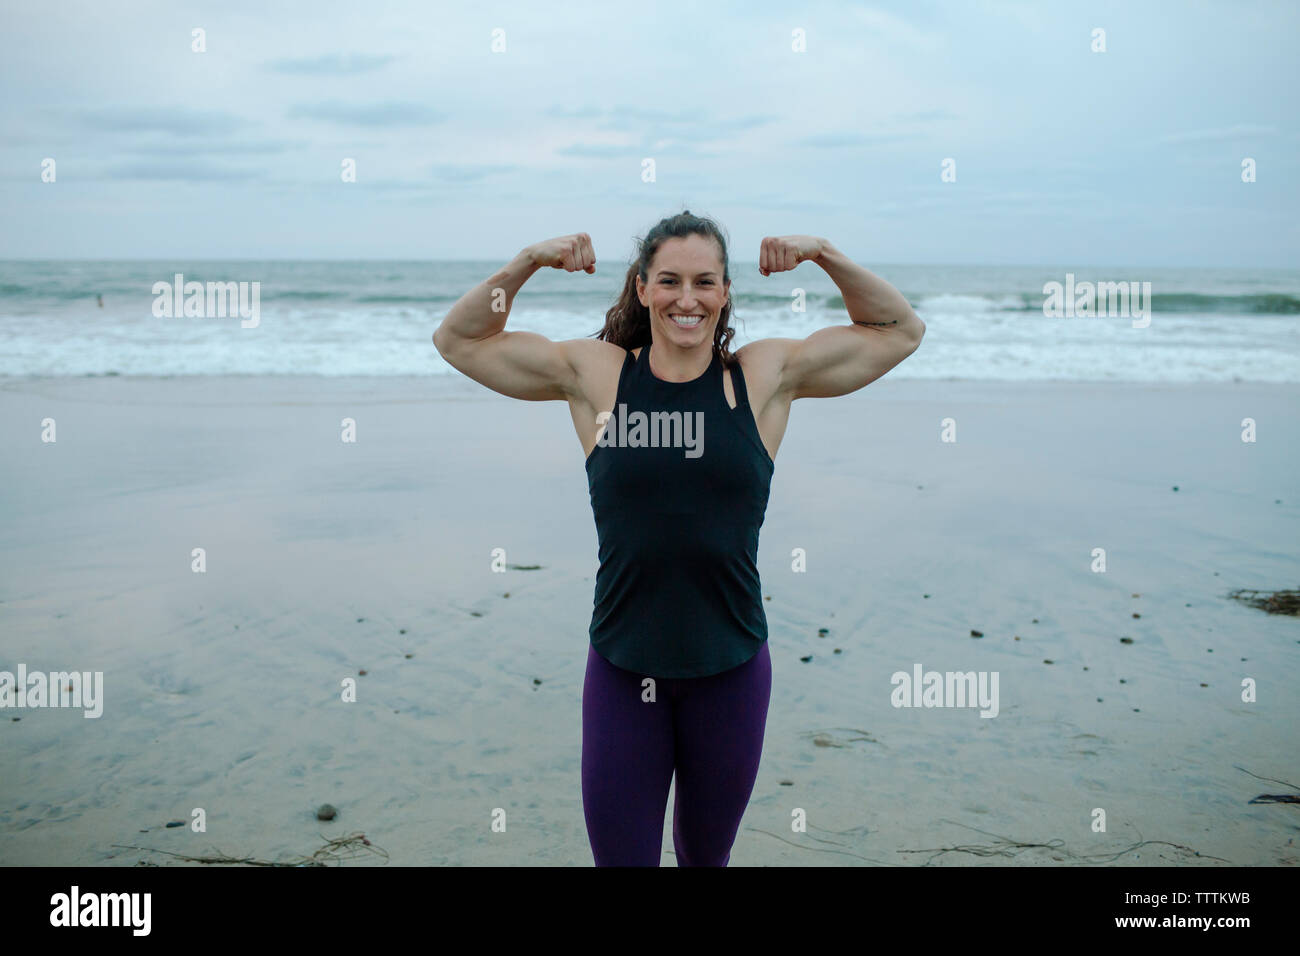 Portrait of woman flexing muscles construction musculaire at beach Photo Stock